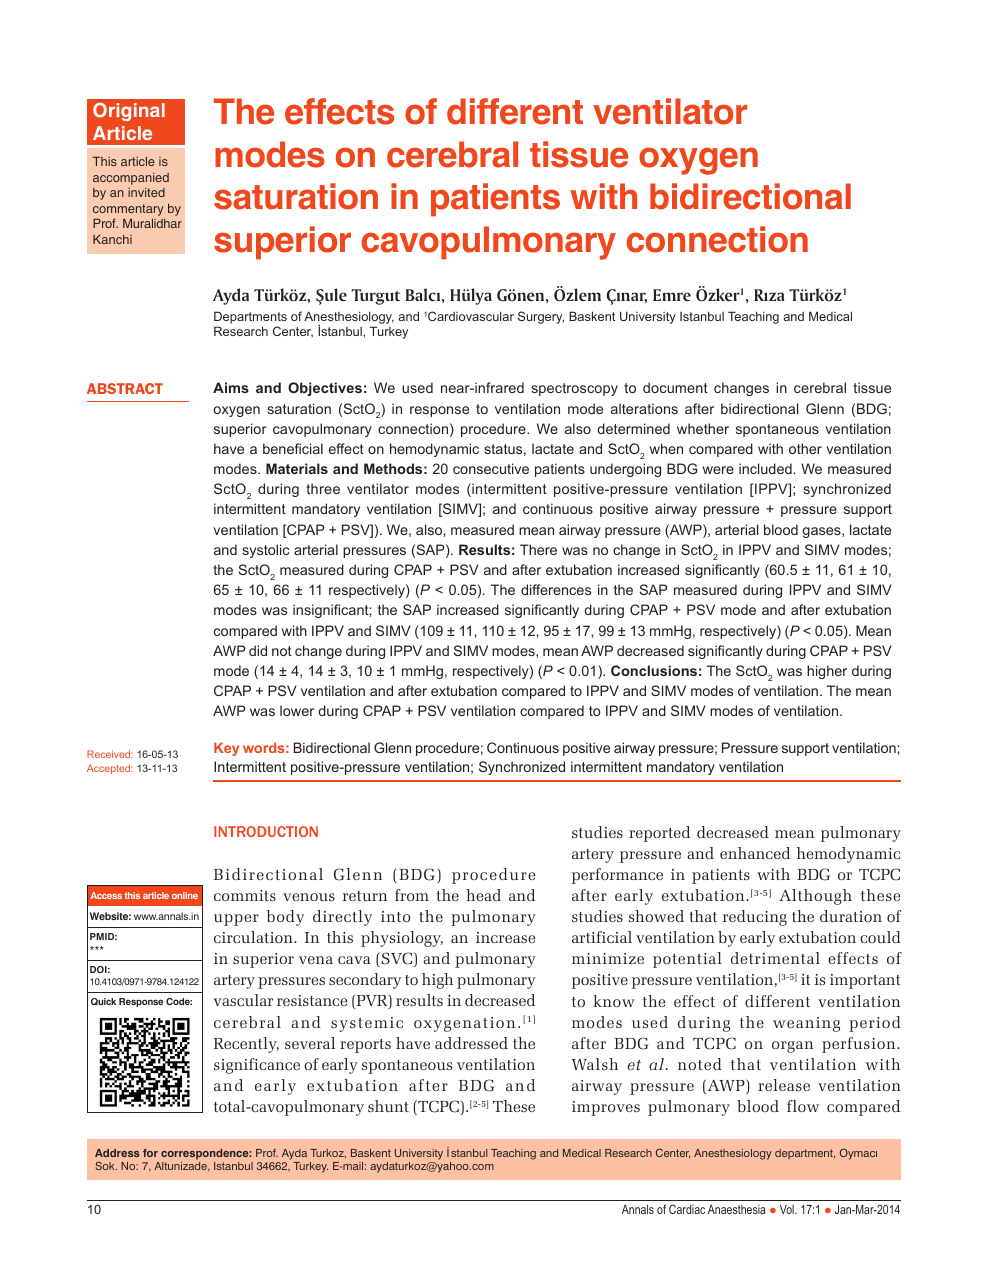 The Effects Of Different Ventilator Modes On Cerebral Tissue Oxygen Saturation In Patients With Bidirectional Superior Cavopulmonary Connection Topic Of Research Paper In Medical Engineering Download Scholarly Article Pdf And Read